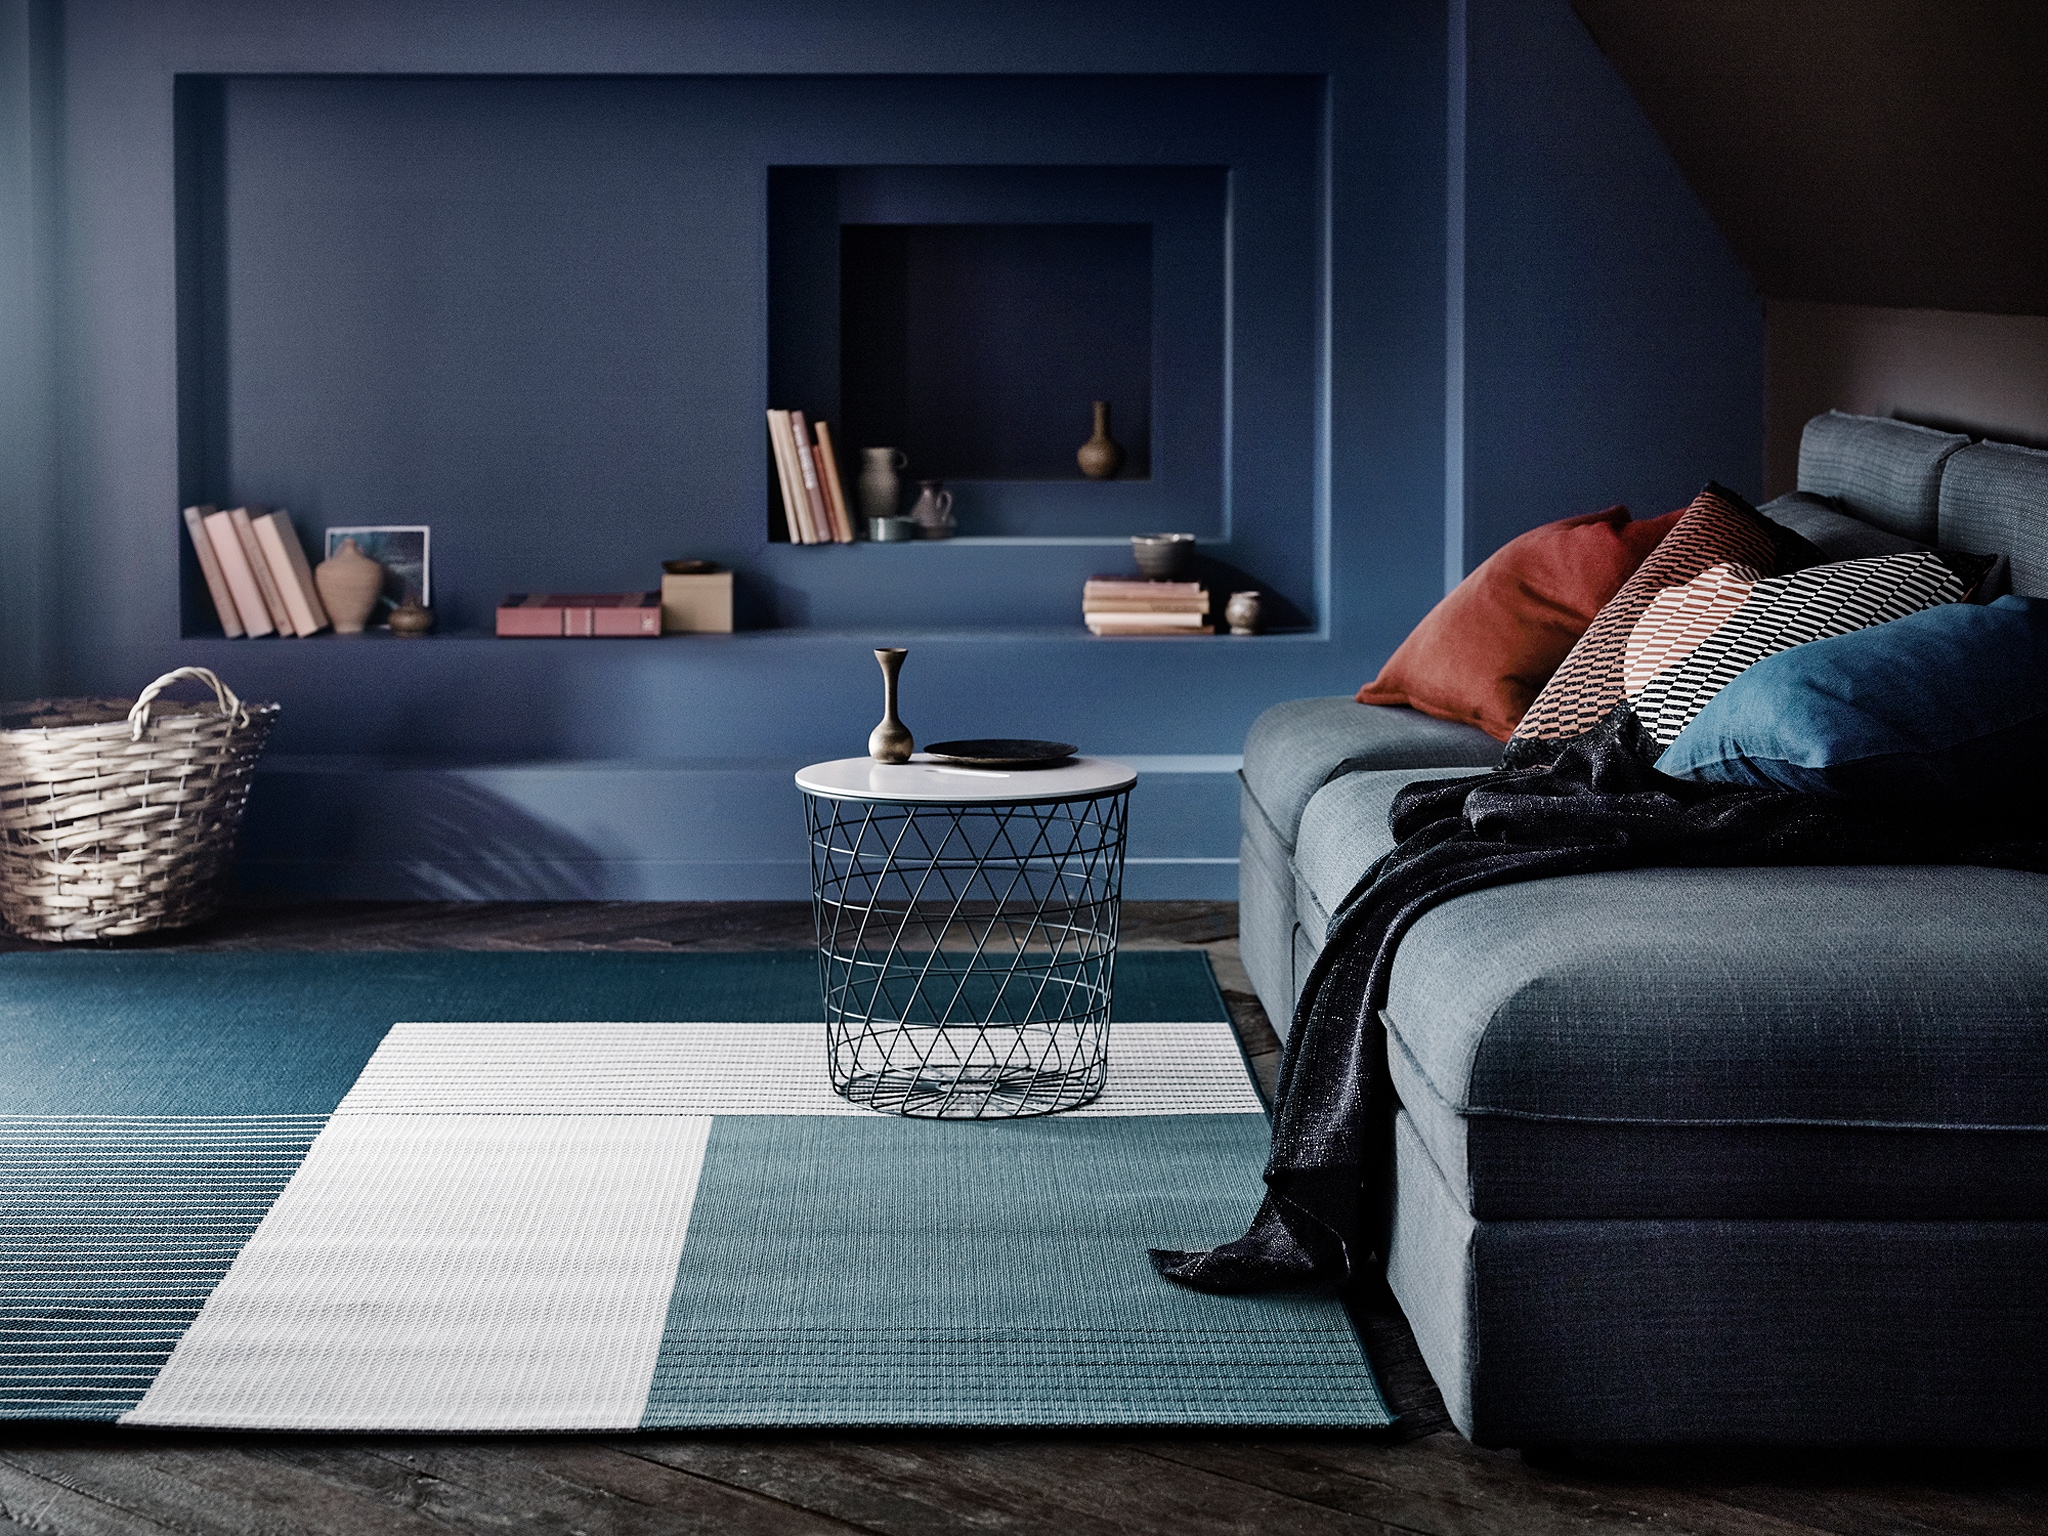 Inspirational Rugs | Buy Rugs Online | Ikea throughout Grey Living Room Rug